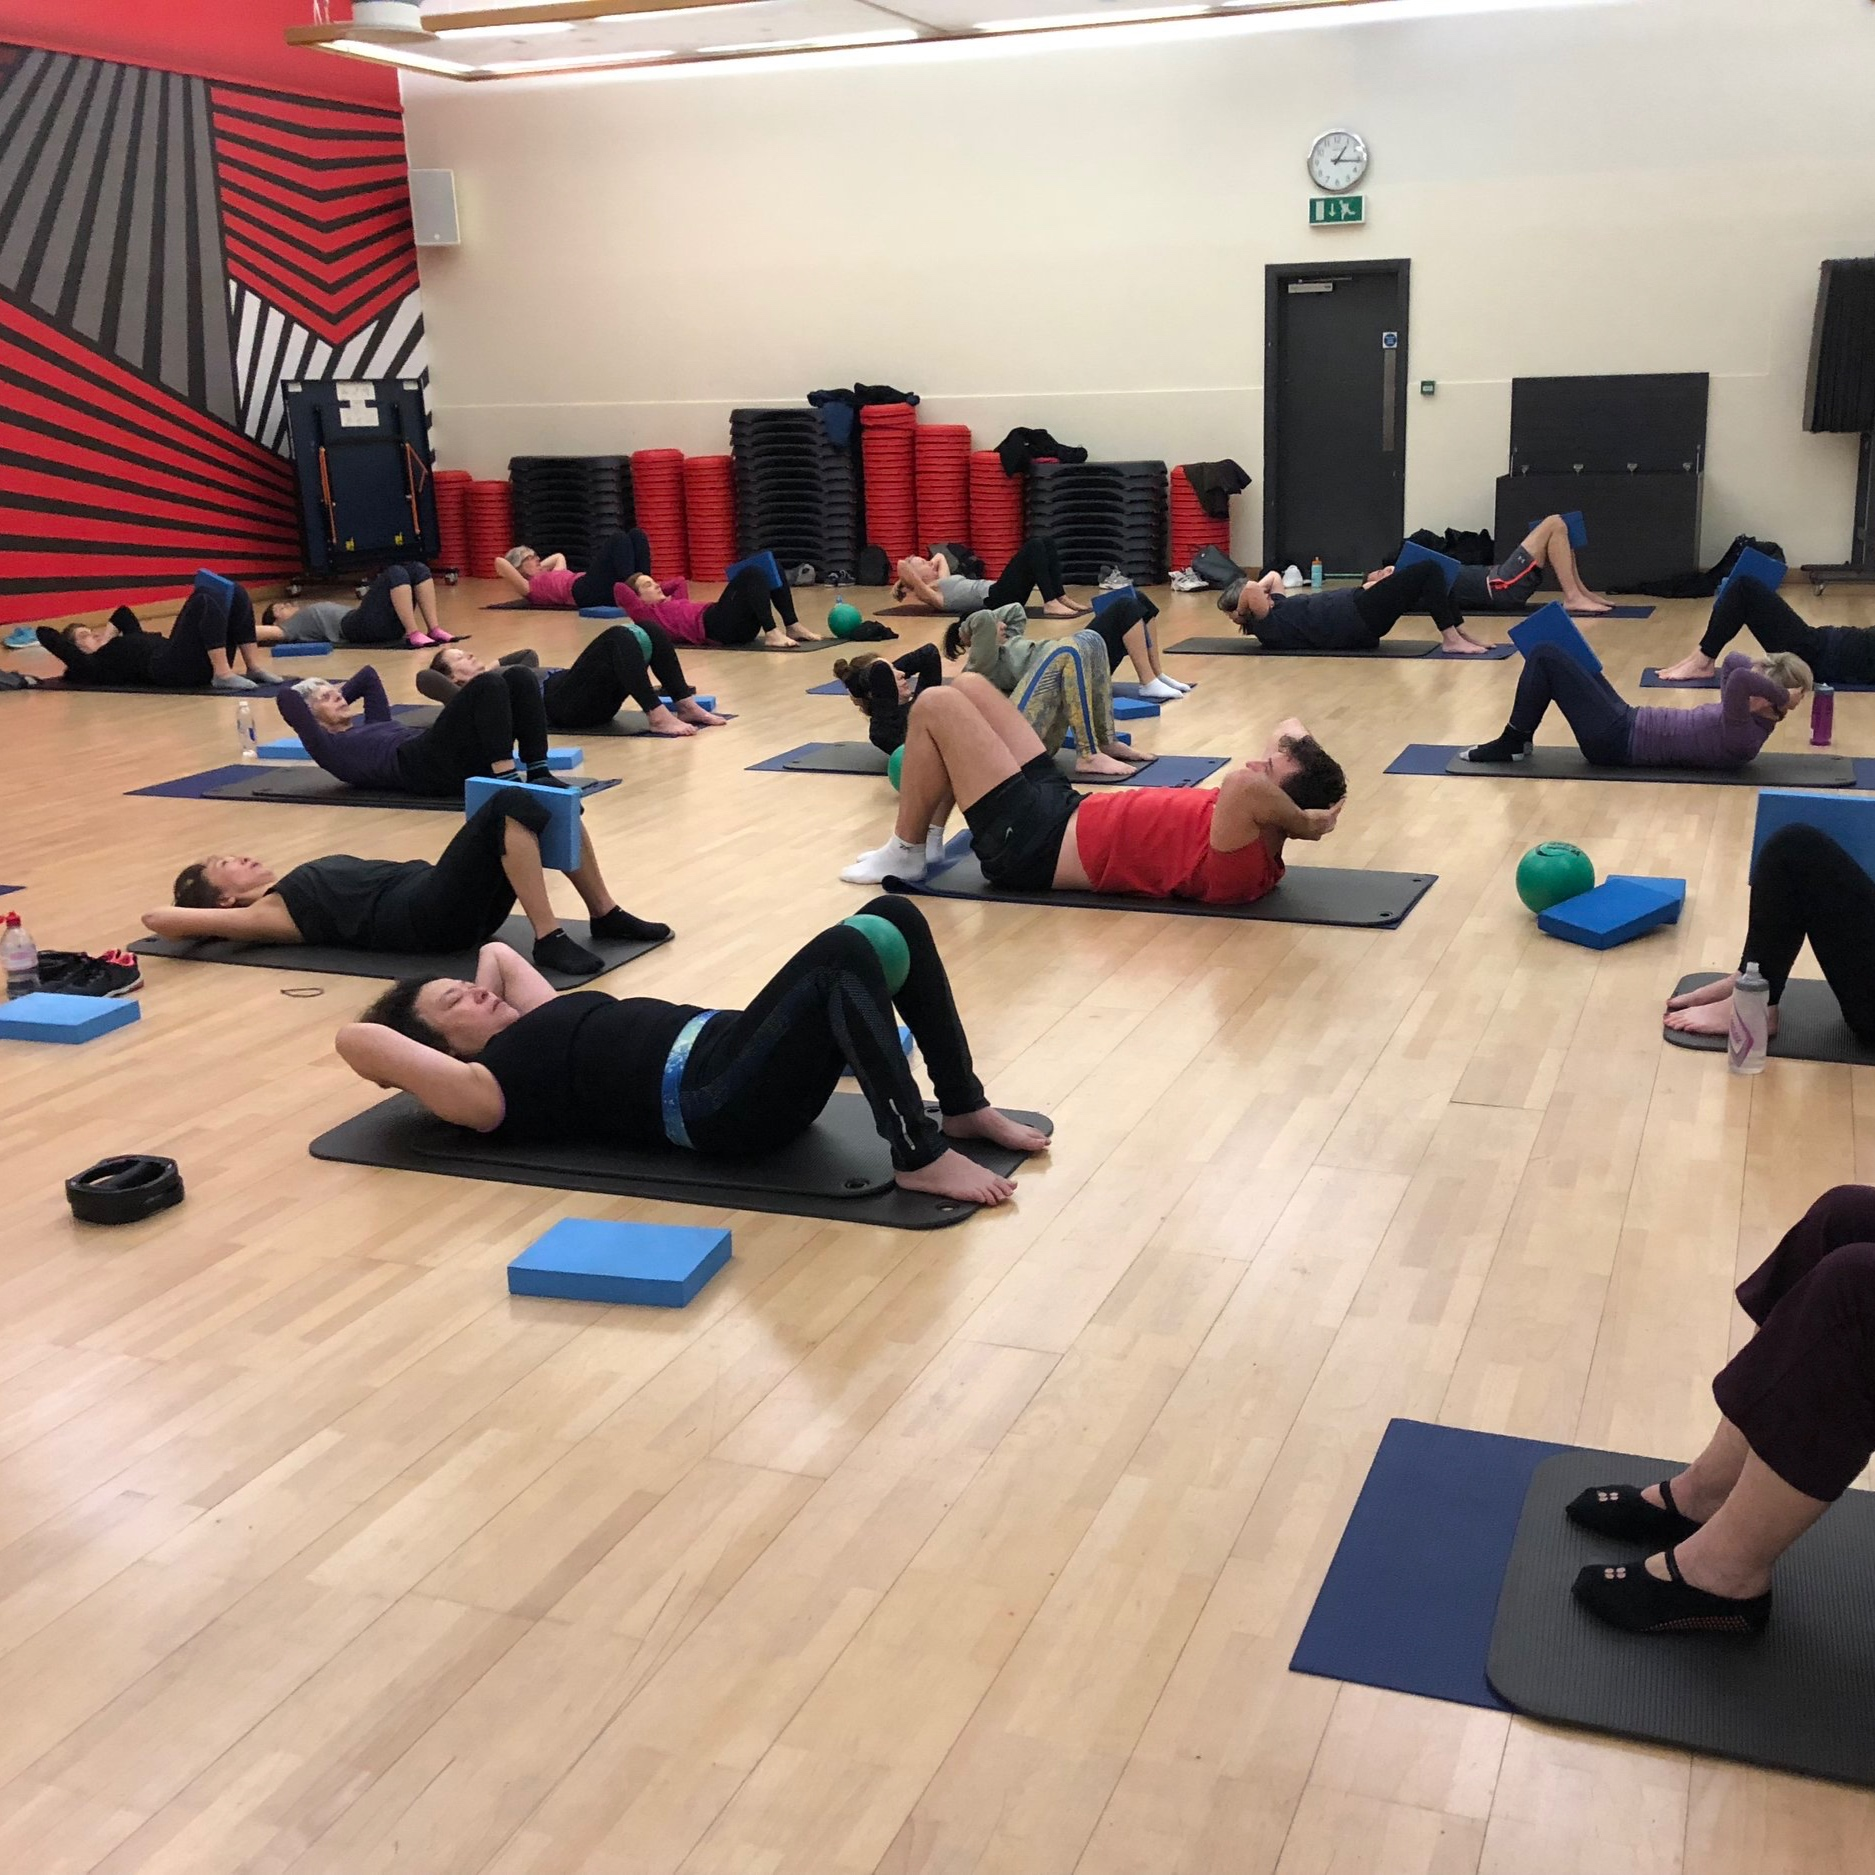 MAT PILATES    Tuesday  Virgin Active, West London (membership required) 08:30-09:30am & 09:30-10:30am   Friday  Virgin Active, West London (membership required) 12:35-13:35pm  Yoga West, Acton 16:45-17:45pm